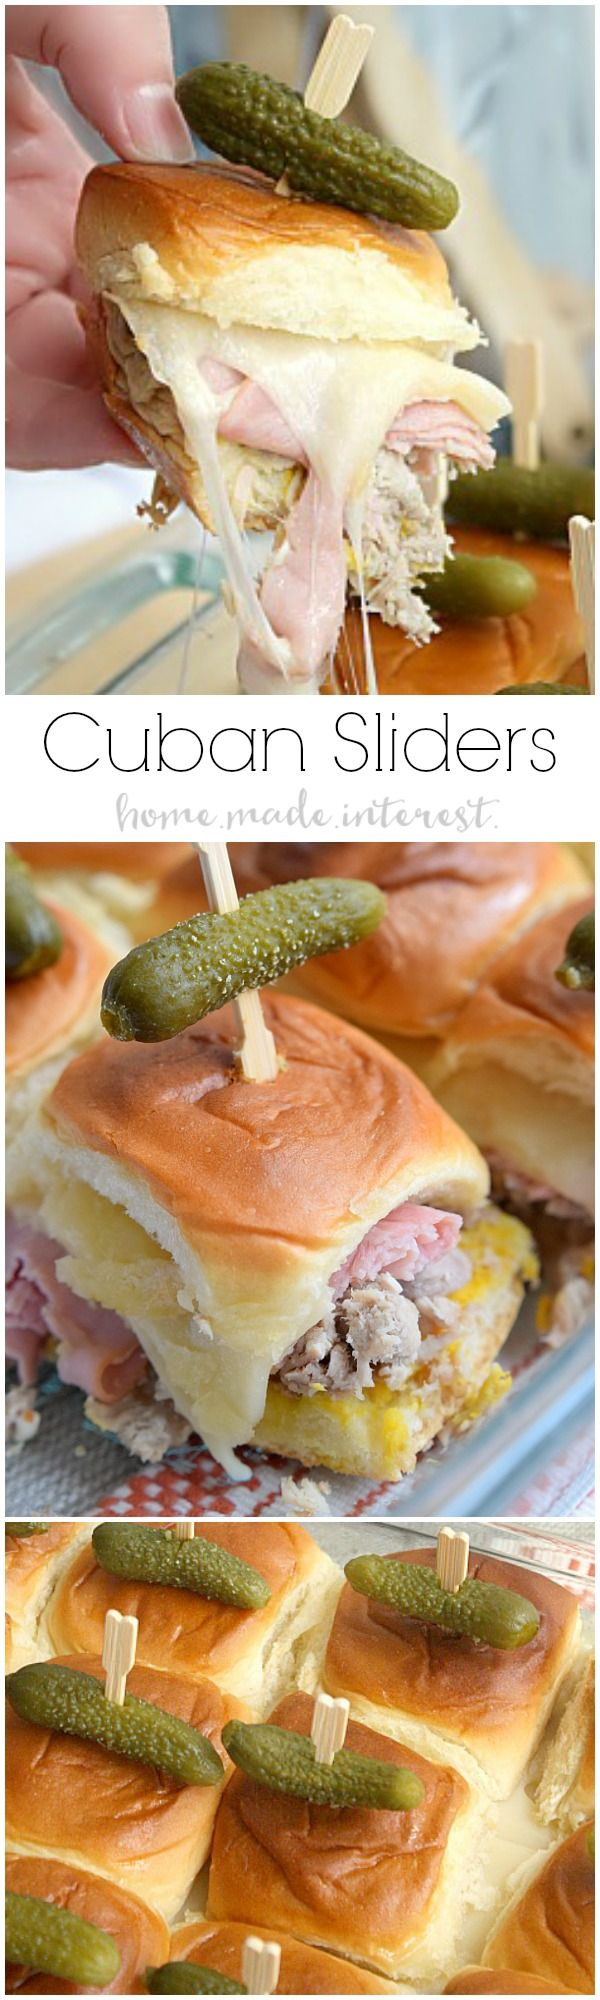 This Cuban sliders recipe is filled with ham, pork, and gooey cheese, all topped with a mini pickle! It is a great slider recipe for parties because you can make them ahead of time and then bake them before your guests arrive. It's a game day recipe your family and friends will love!